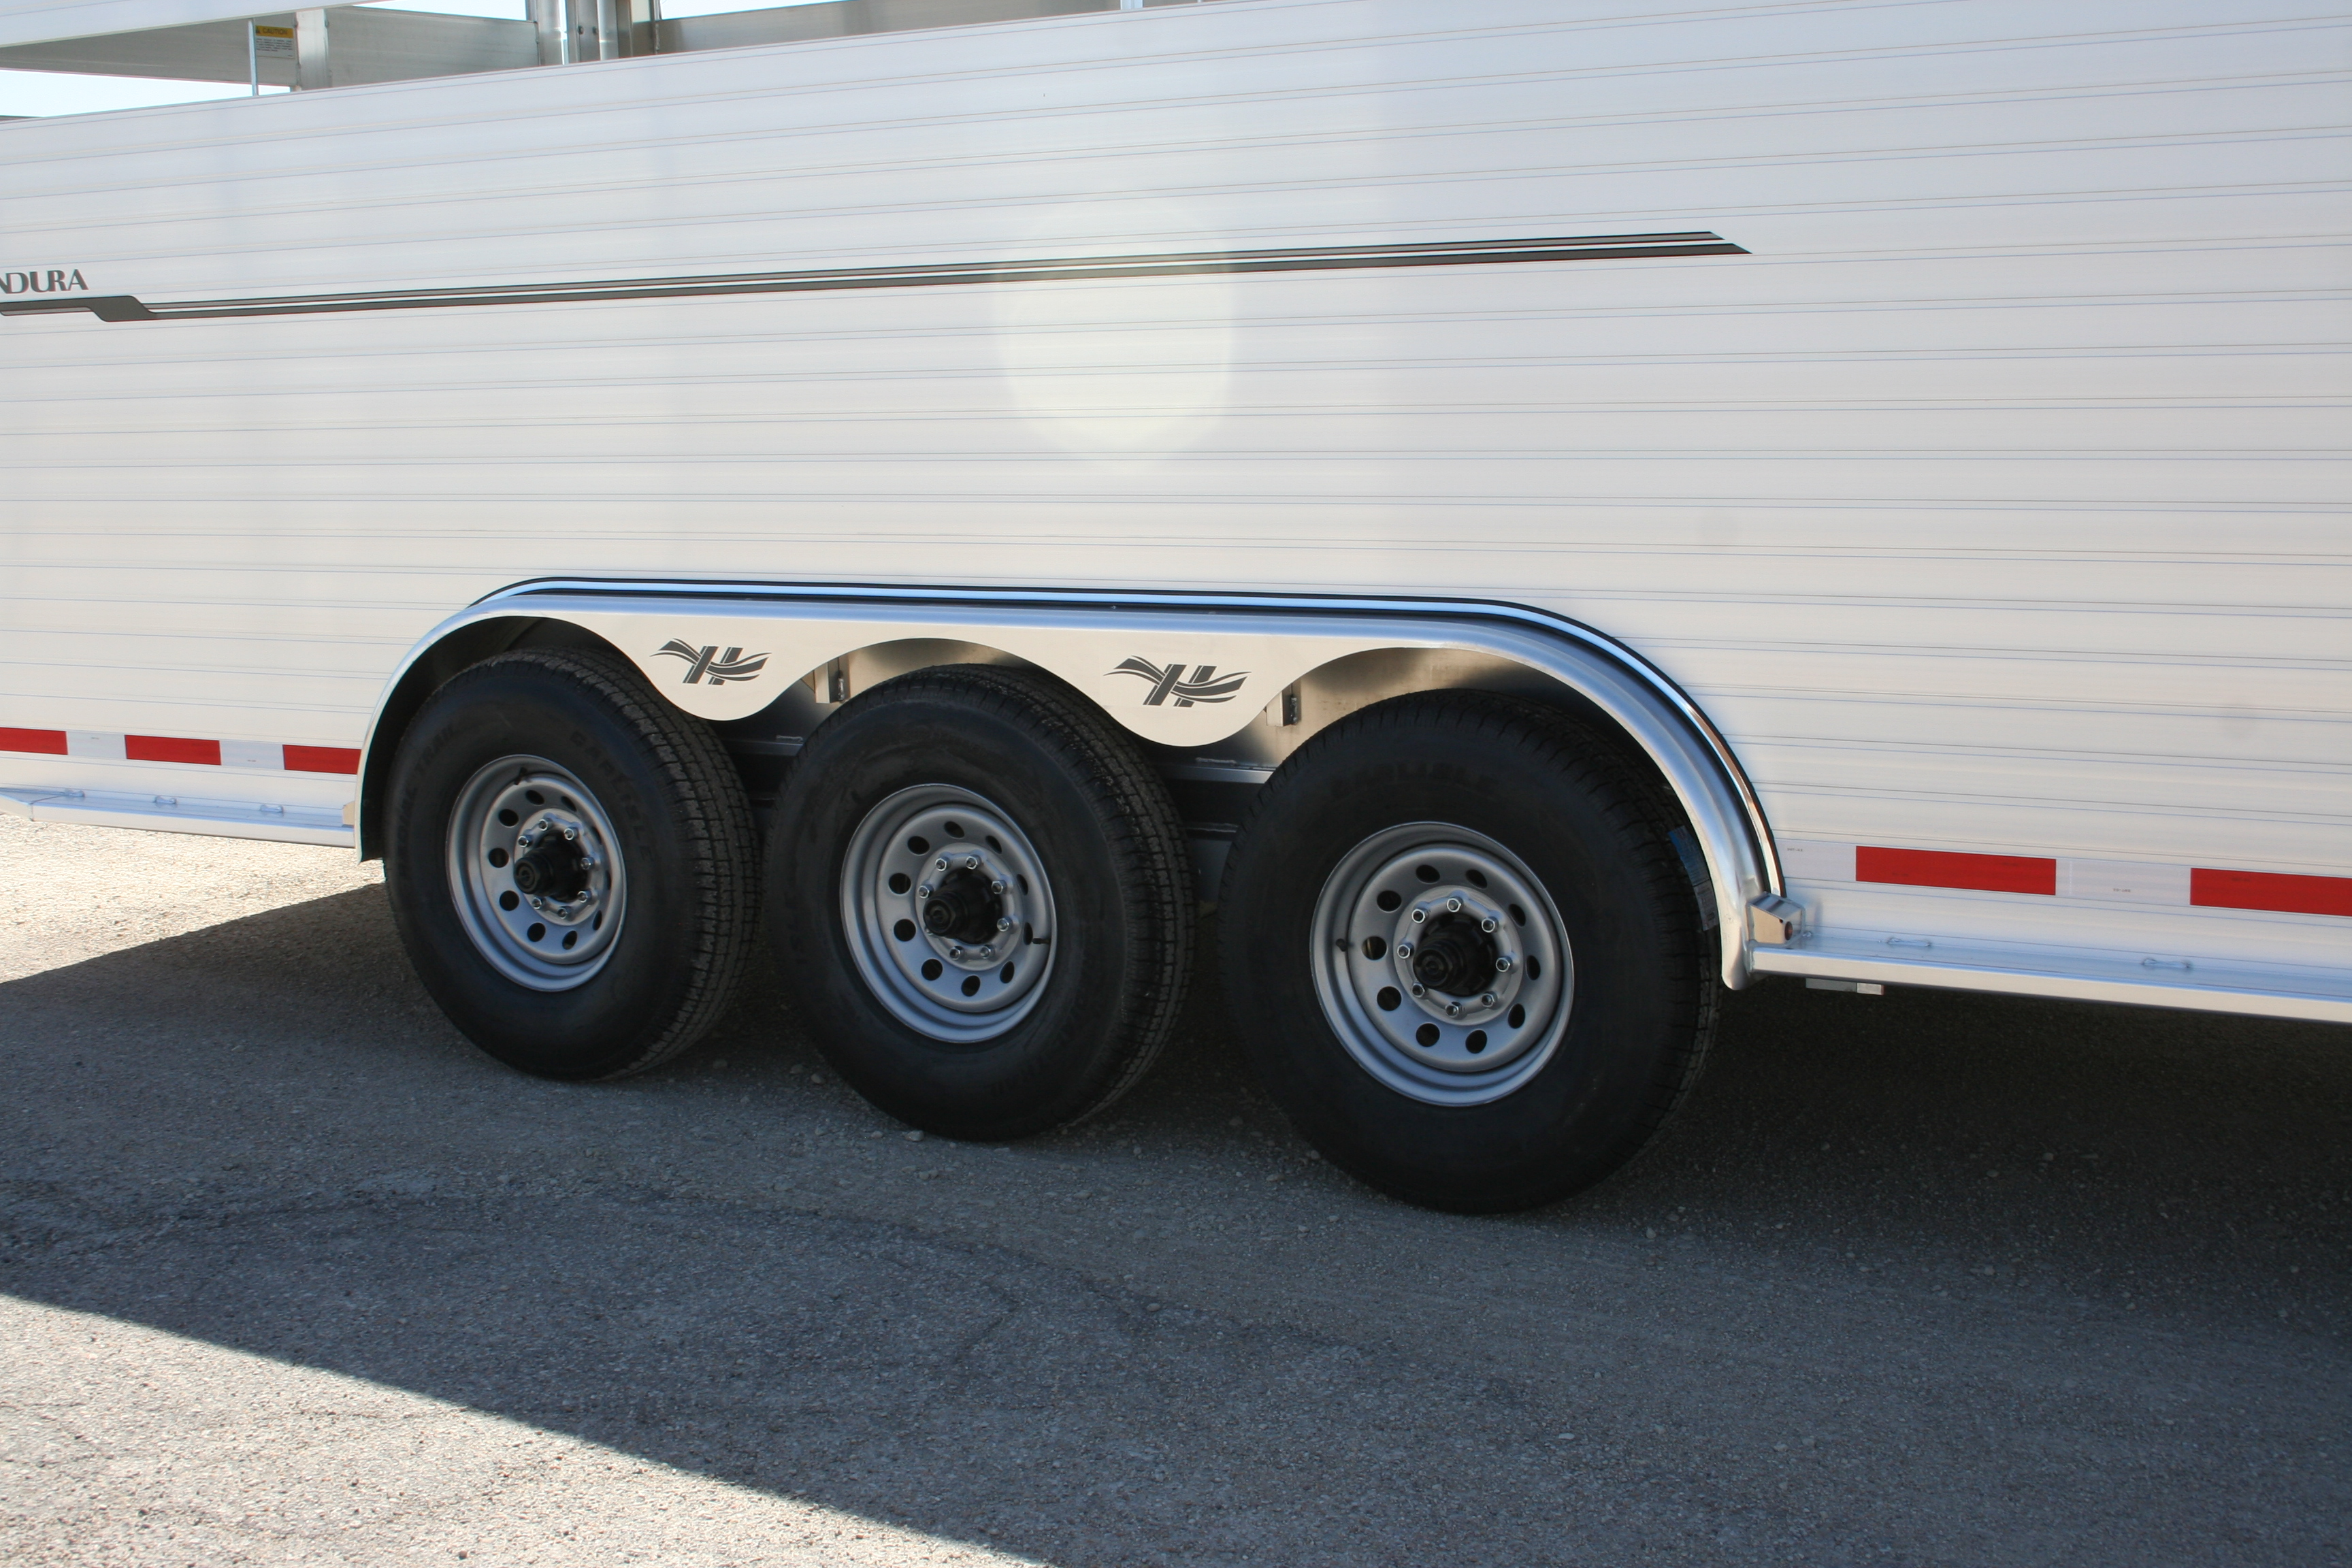 Walton Trailer Wiring Diagram Libraries Livestock Hillsboro Blogendura Trailers And Truckbeds